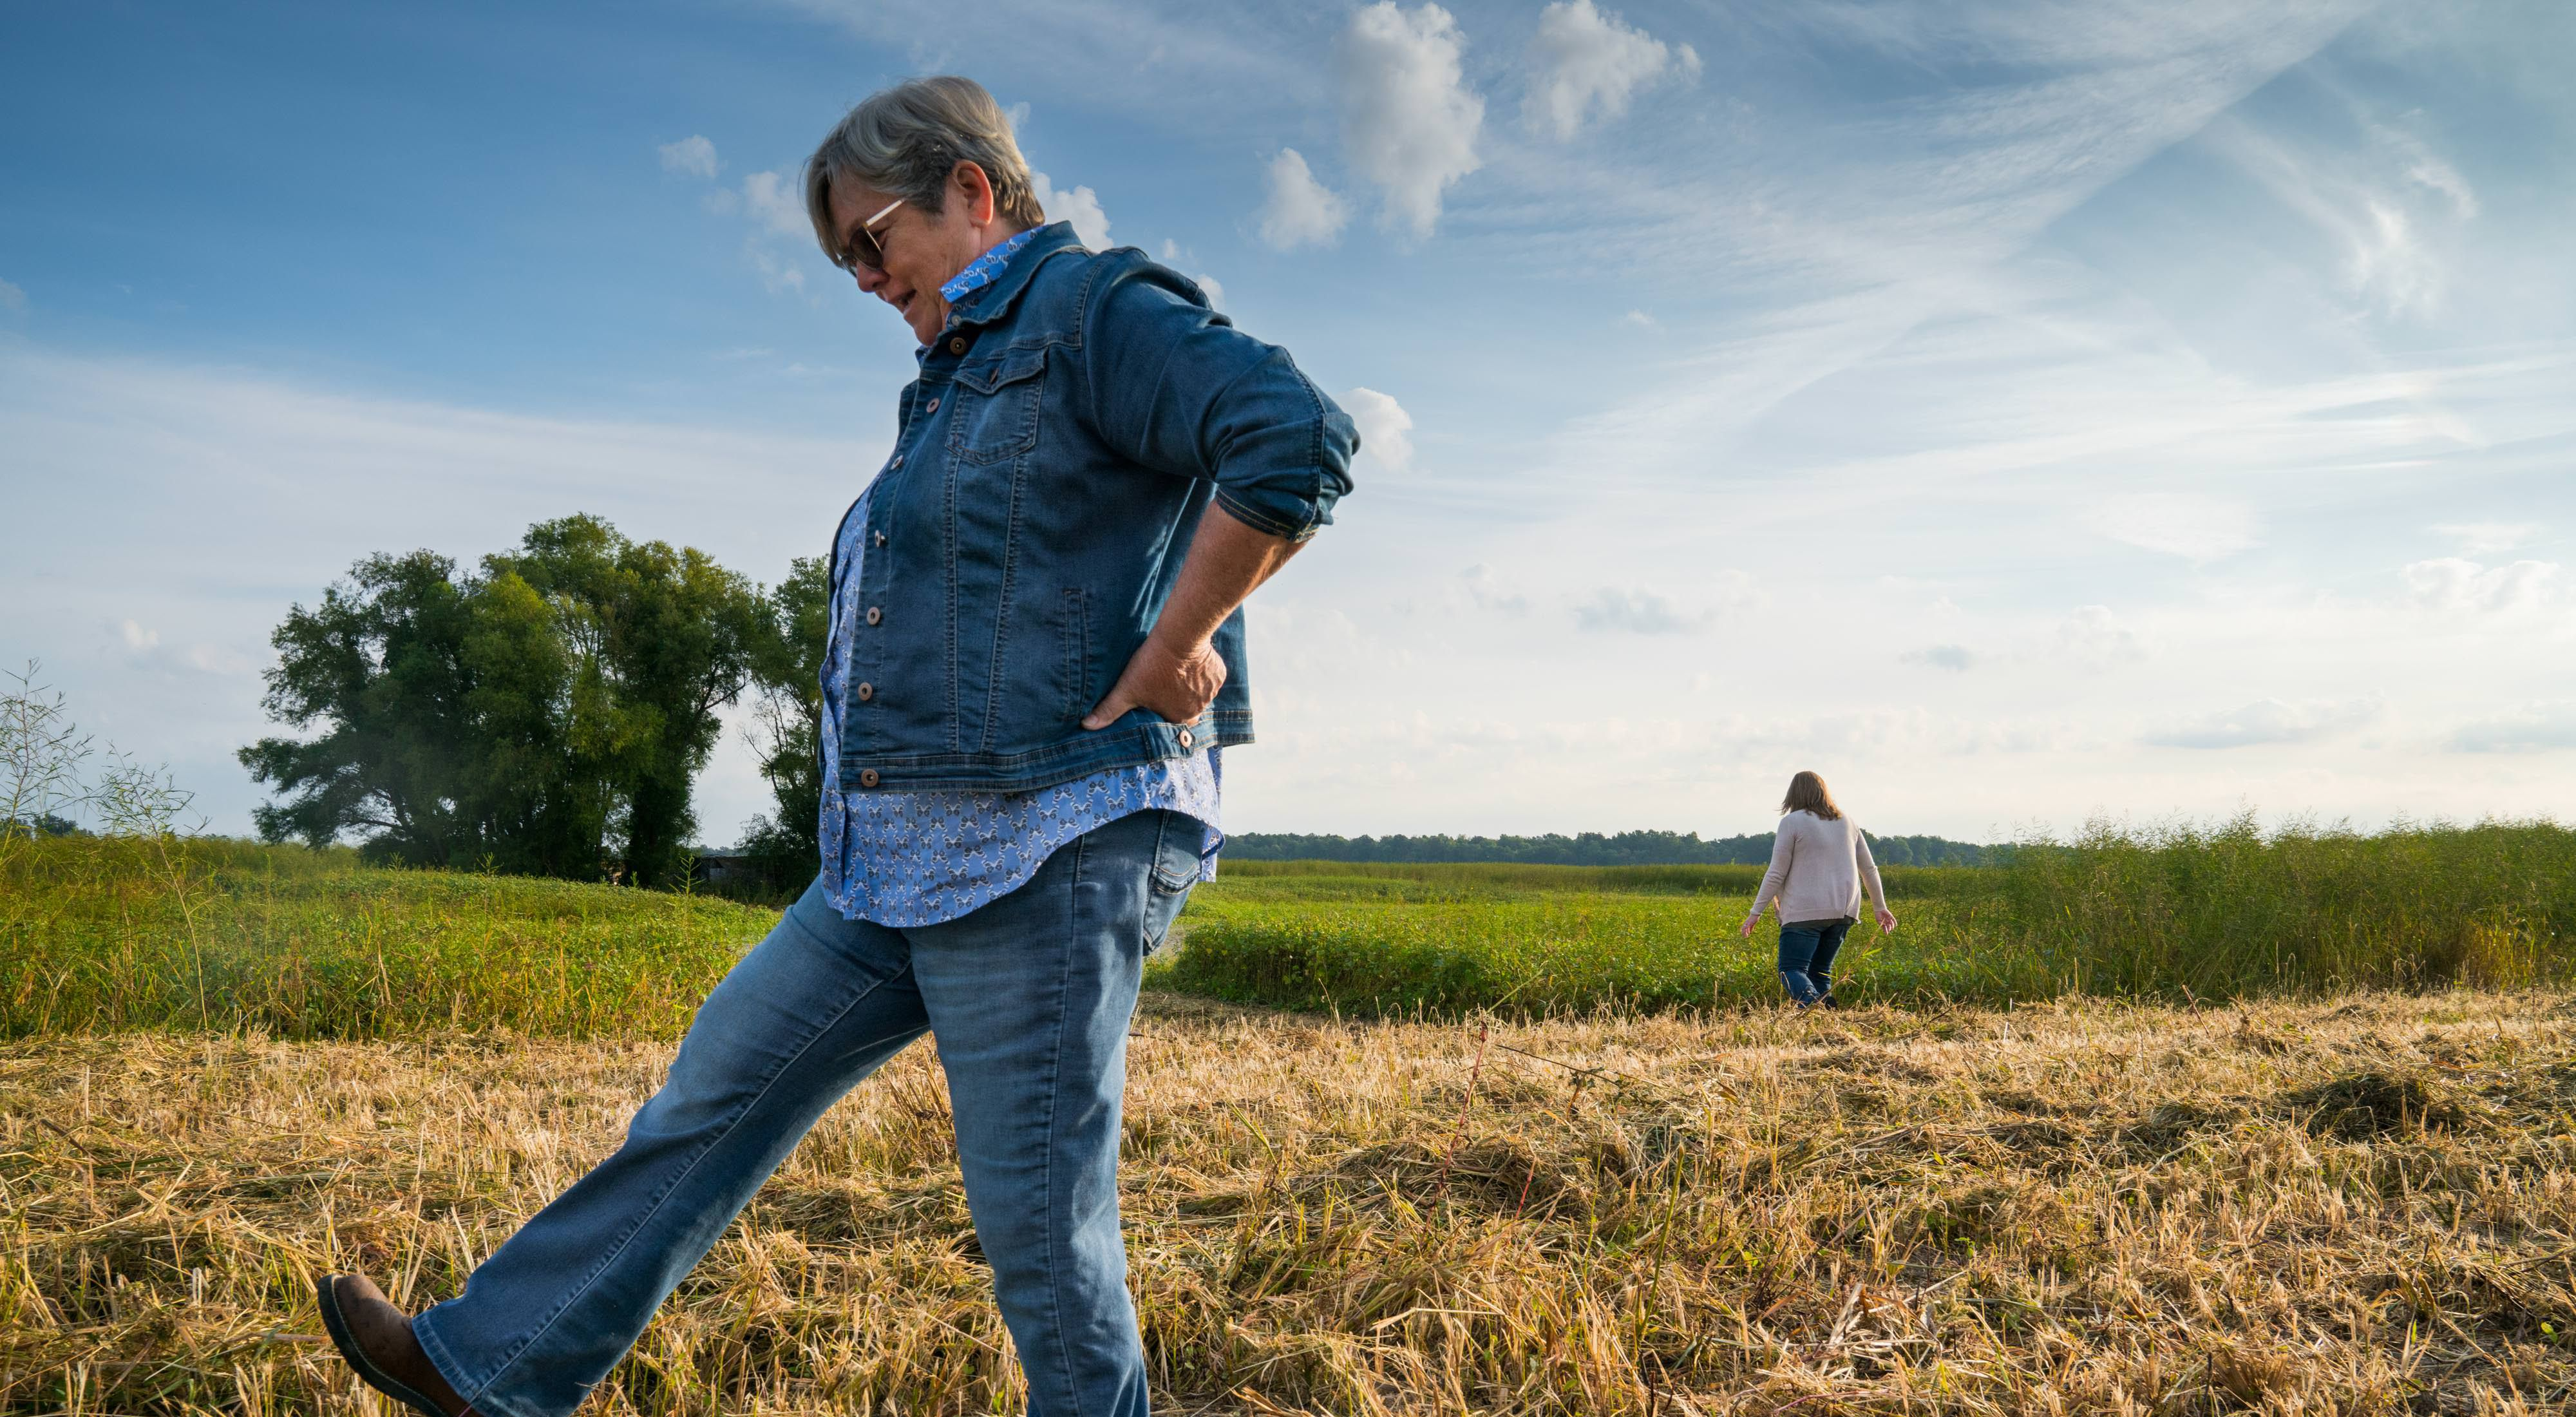 A woman kicks at the grass on her family's farm